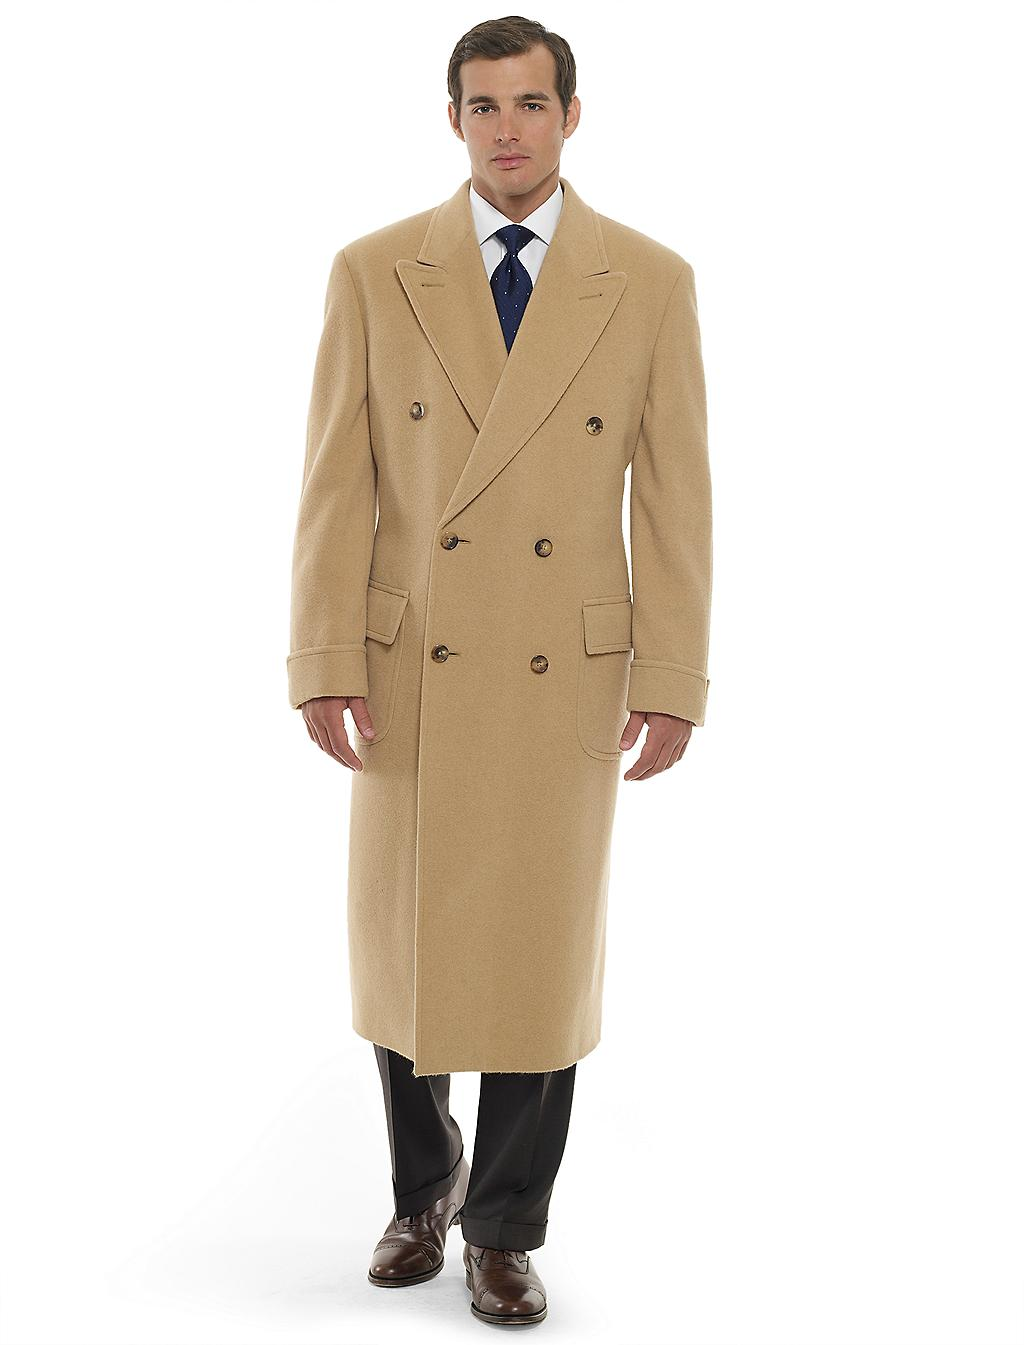 The Best Men's Overcoats That Are Totally Worth Your Money. The top layer that makes stylish winter dressing a piece of cake. 9 Men's Winter Boots for Braving All the Elements. Go bold in blue with your overcoat this spring! This camel-hair car coat is a shorter-length option for those guys who are a bit vertically challenged. The.